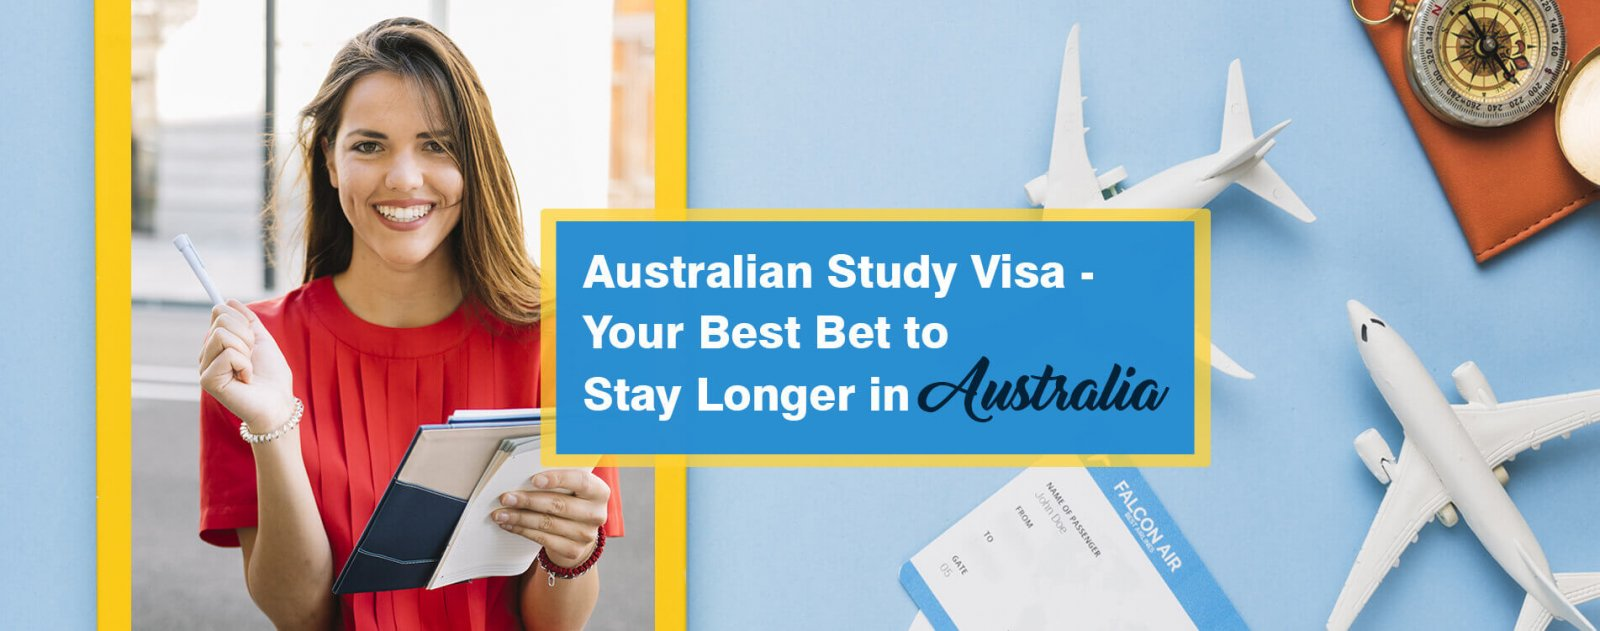 large.1289766209_Australianstudyvisa-job